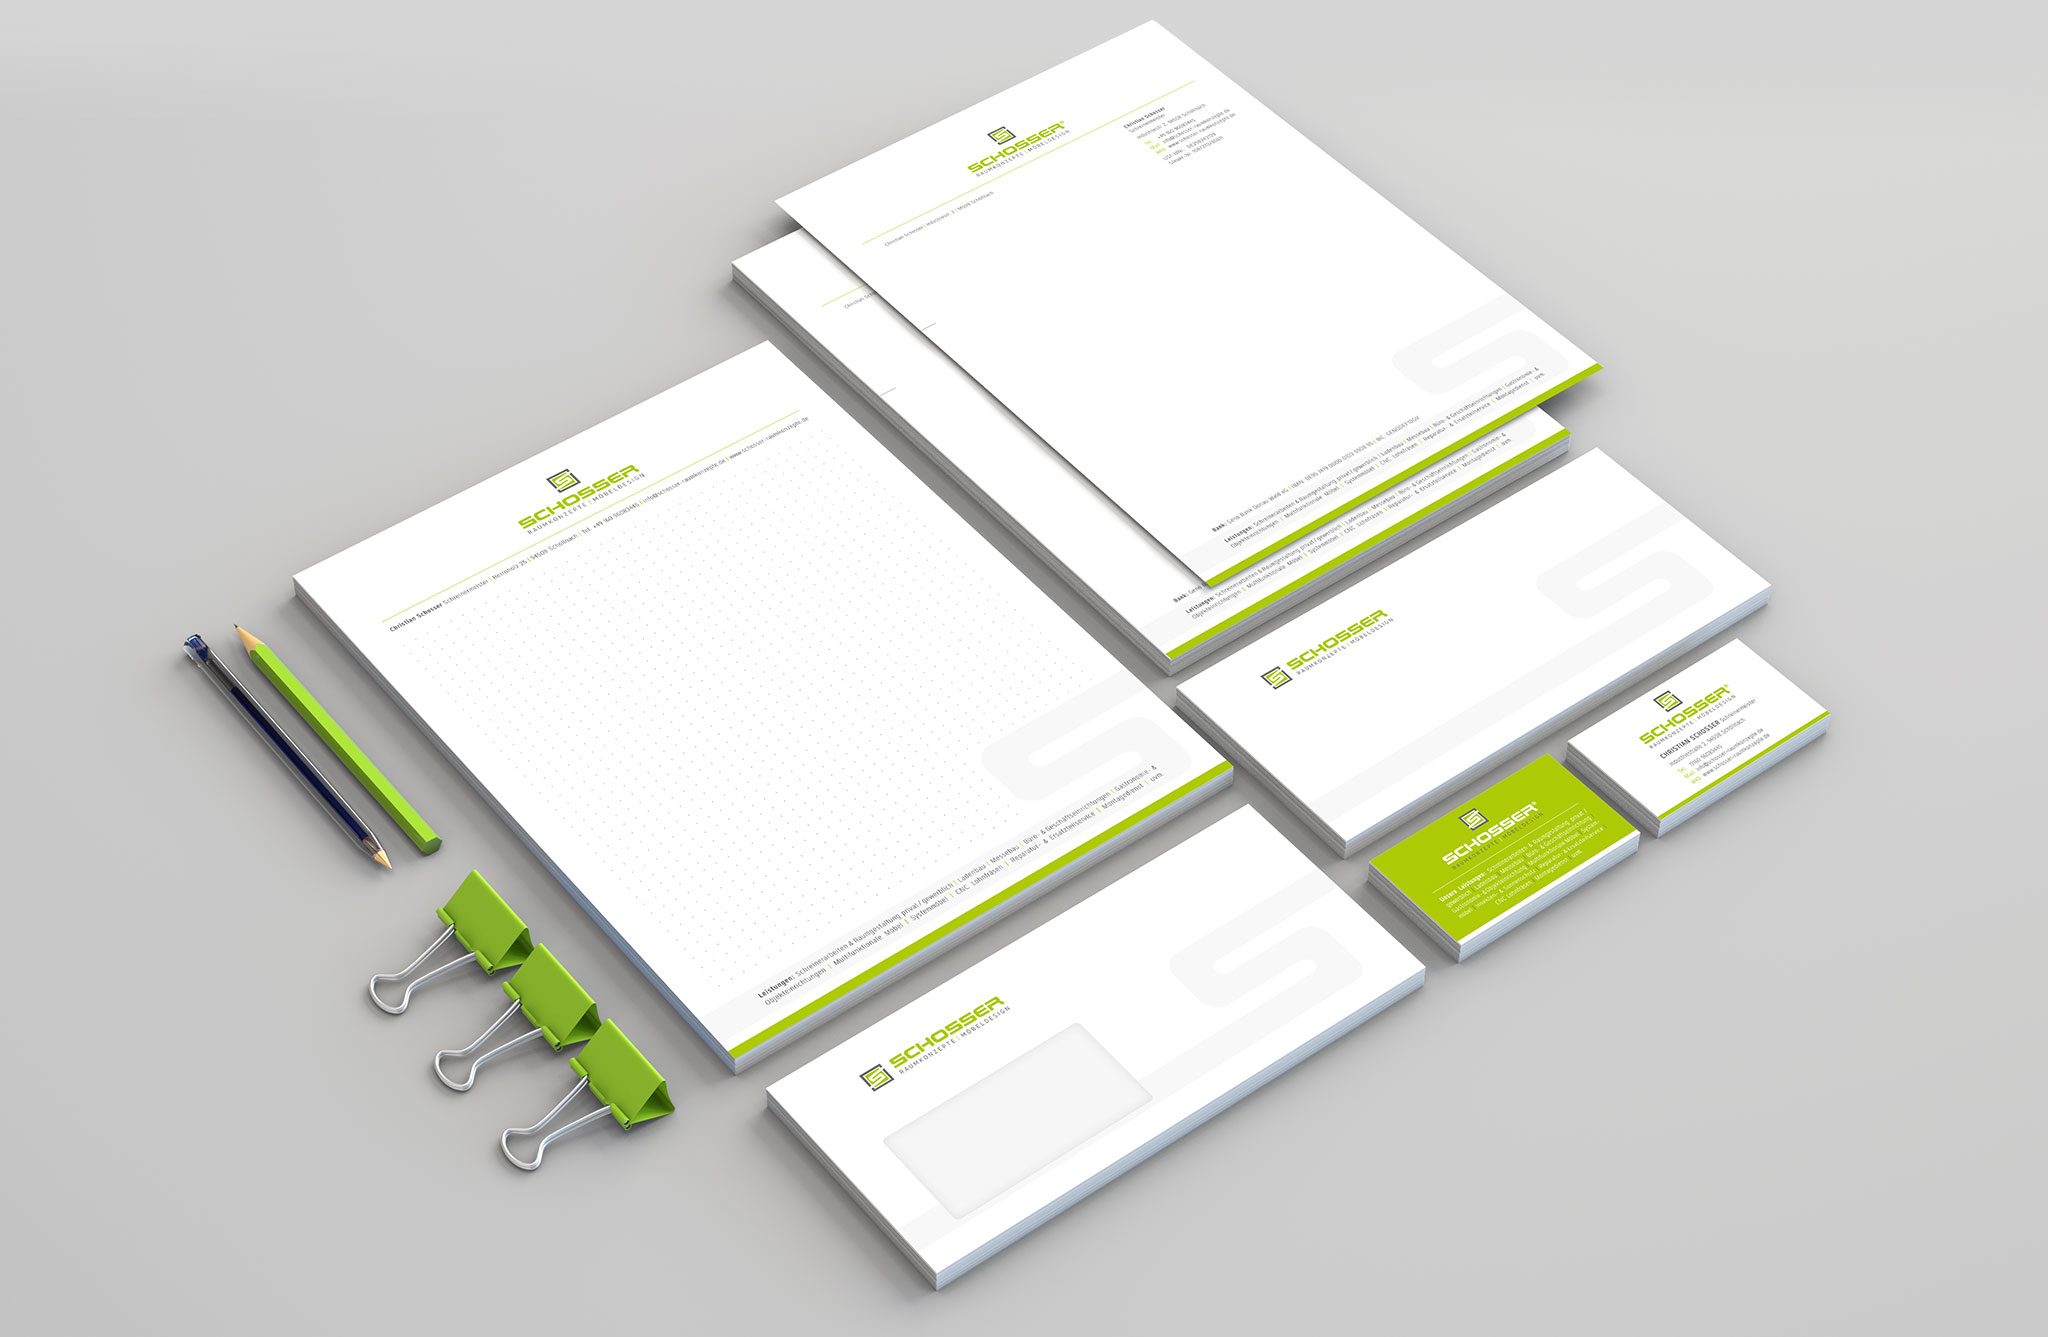 Schosser Corporate Design | Agentur Ritter